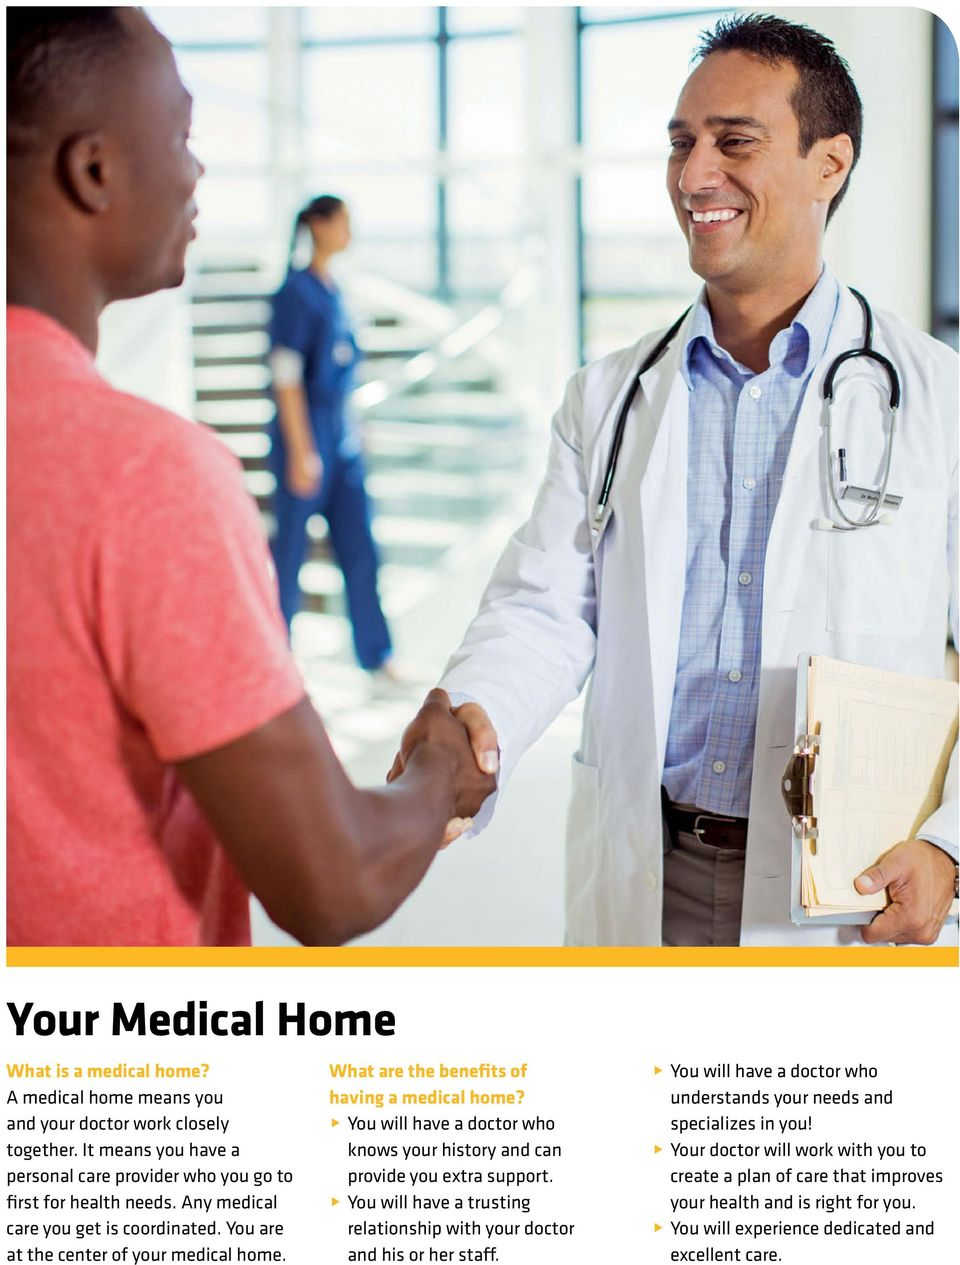 What are the benefits of having a medical home? @ You will have a doctor who knows your history and can provide you extra support.